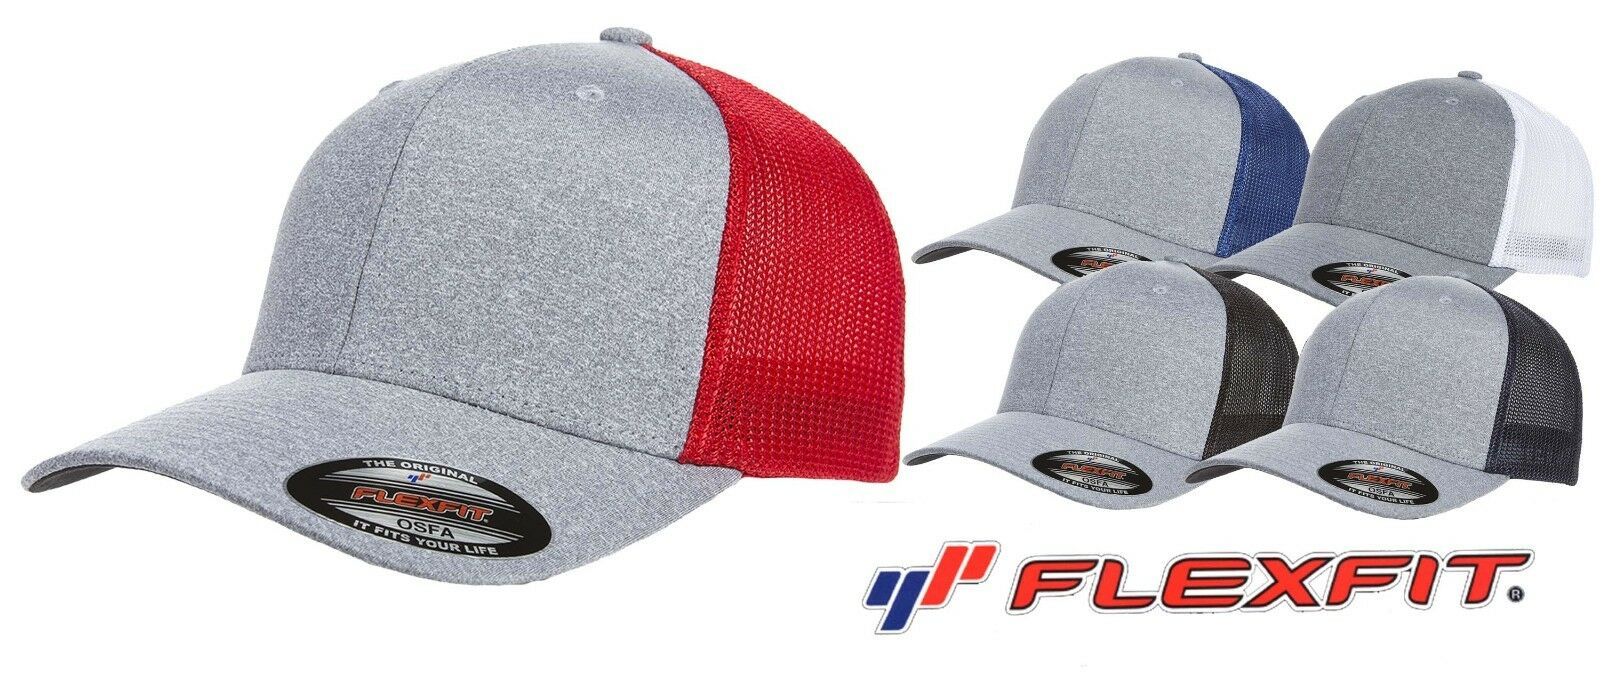 2ebd7836 Flexfit Mélange Stretch Mesh Cap hat baseball blank 5 colors one ...